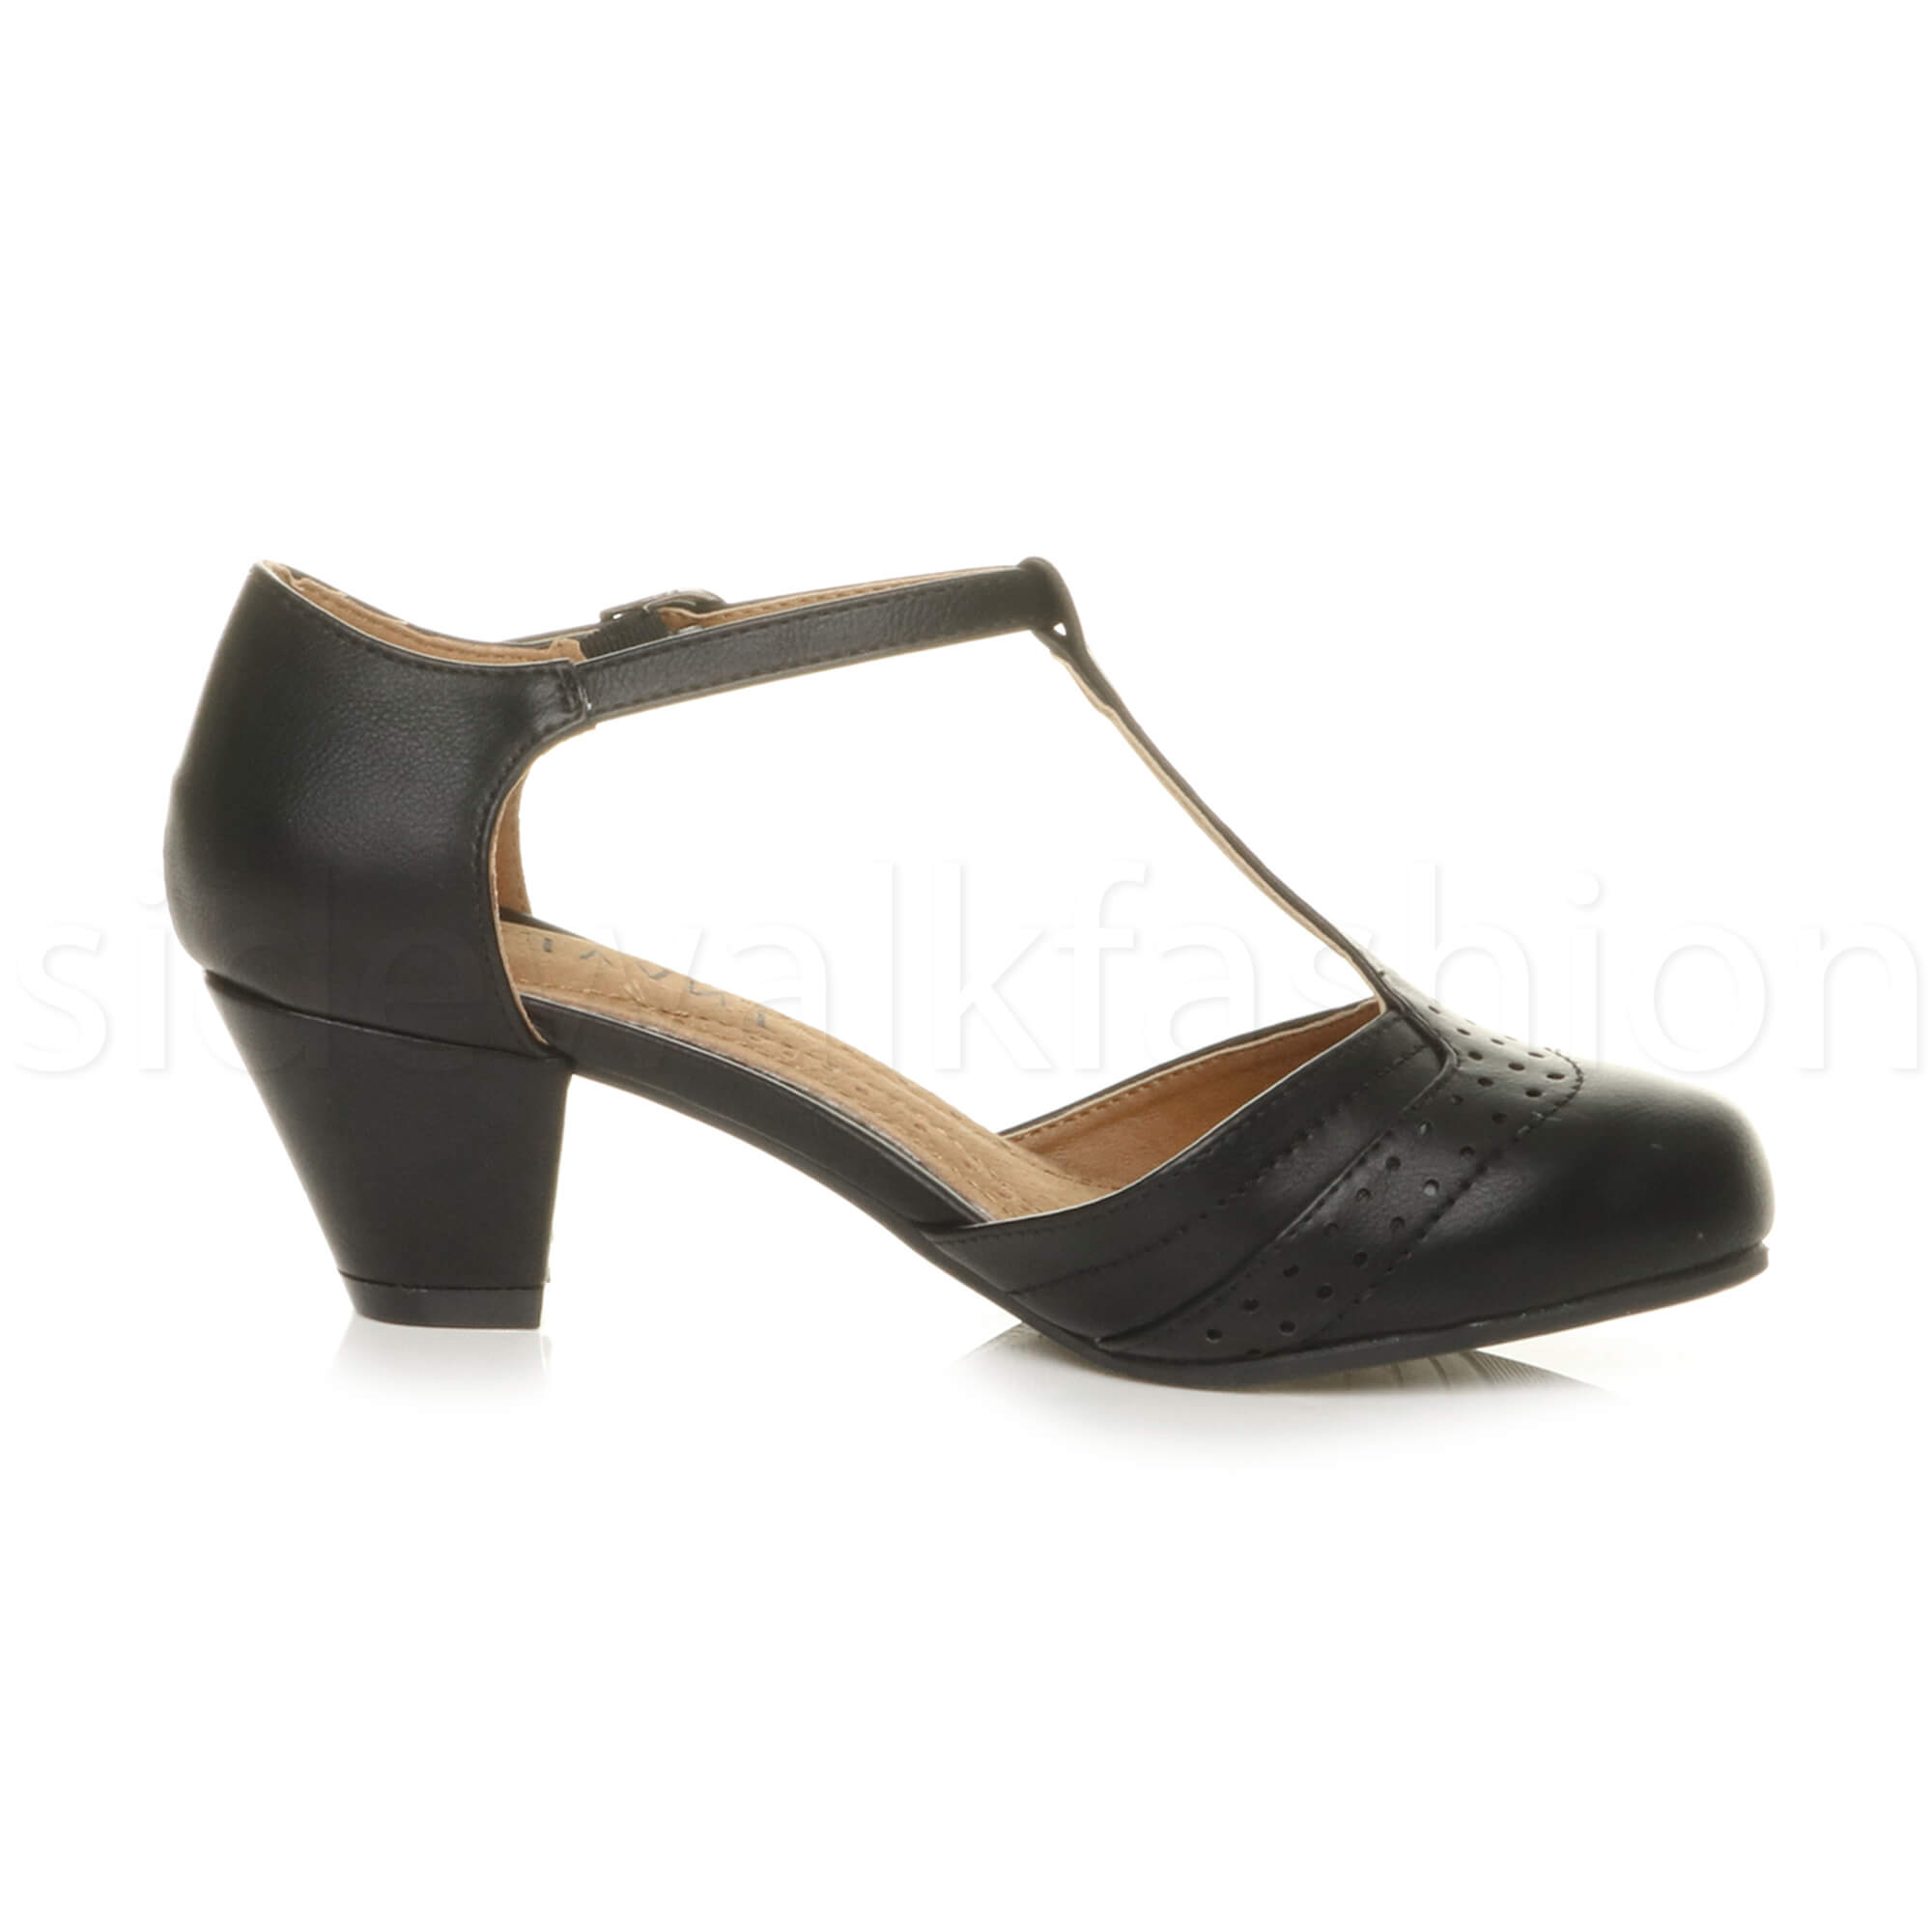 Womens-ladies-block-low-mid-heel-smart-work-Mary-Jane-T-bar-brogue-court-shoes thumbnail 4